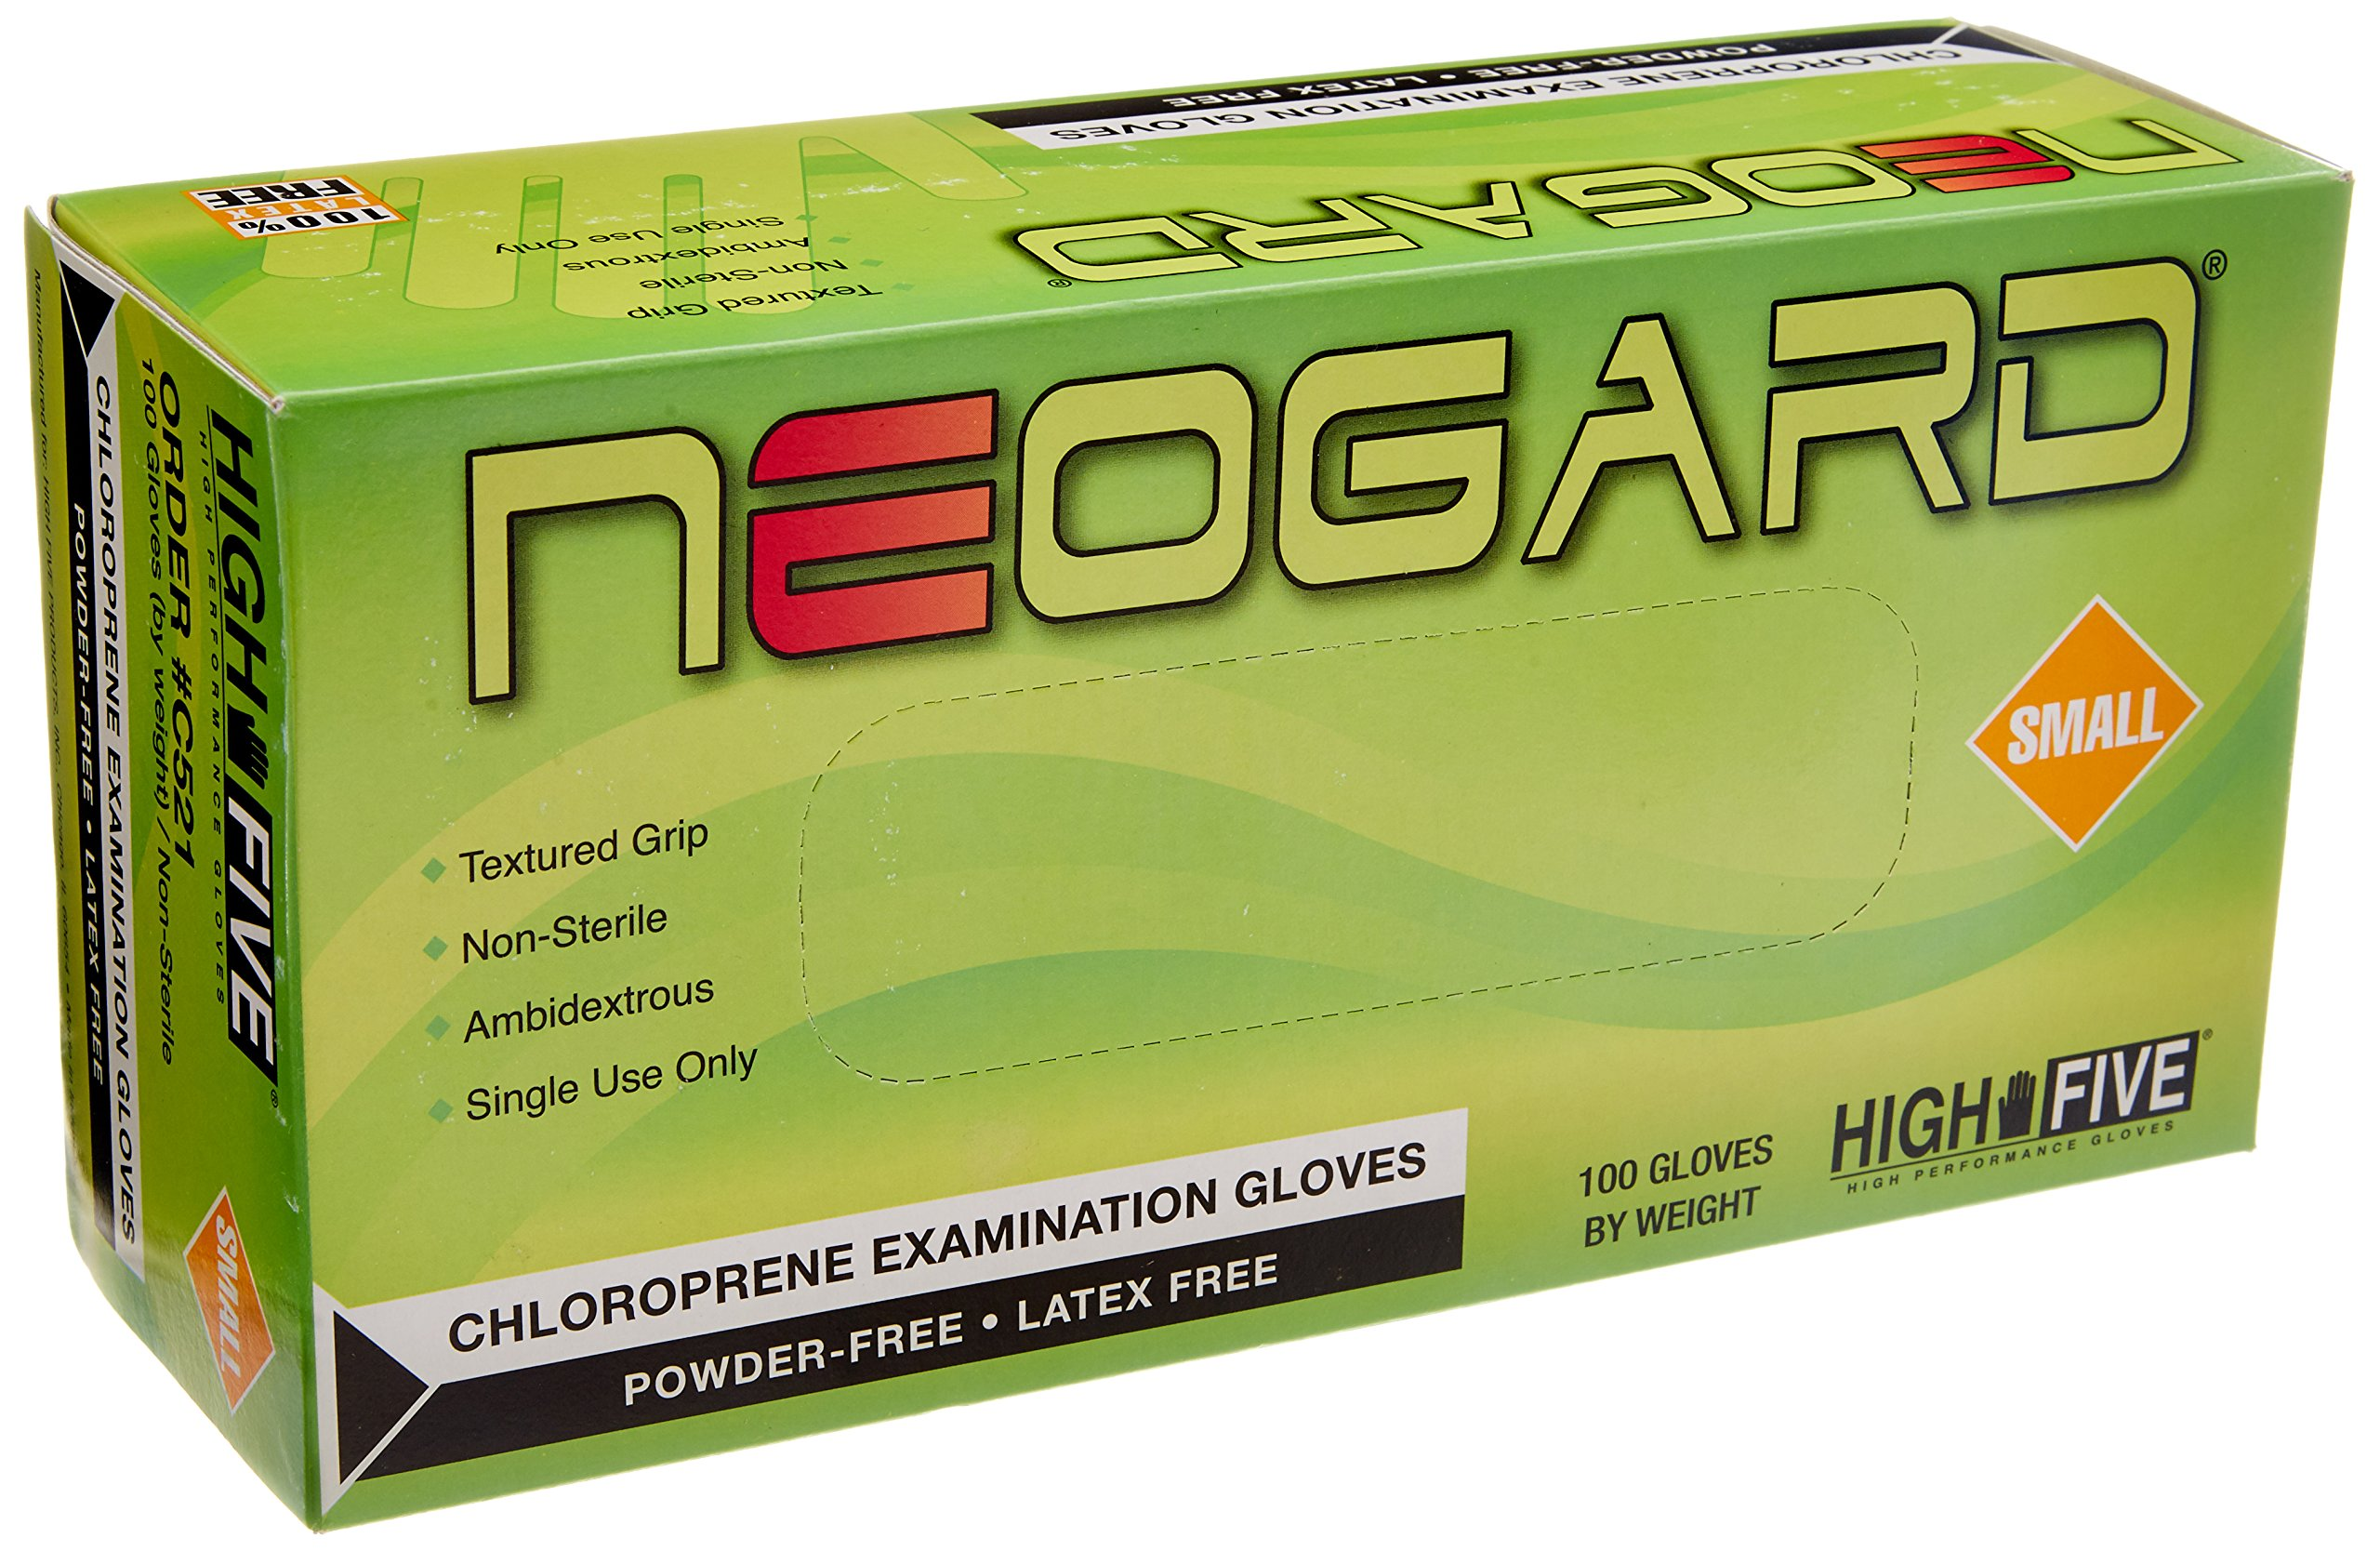 High Five Neogard C521 Chloroprene Exam Glove, Small (Case of 1000)